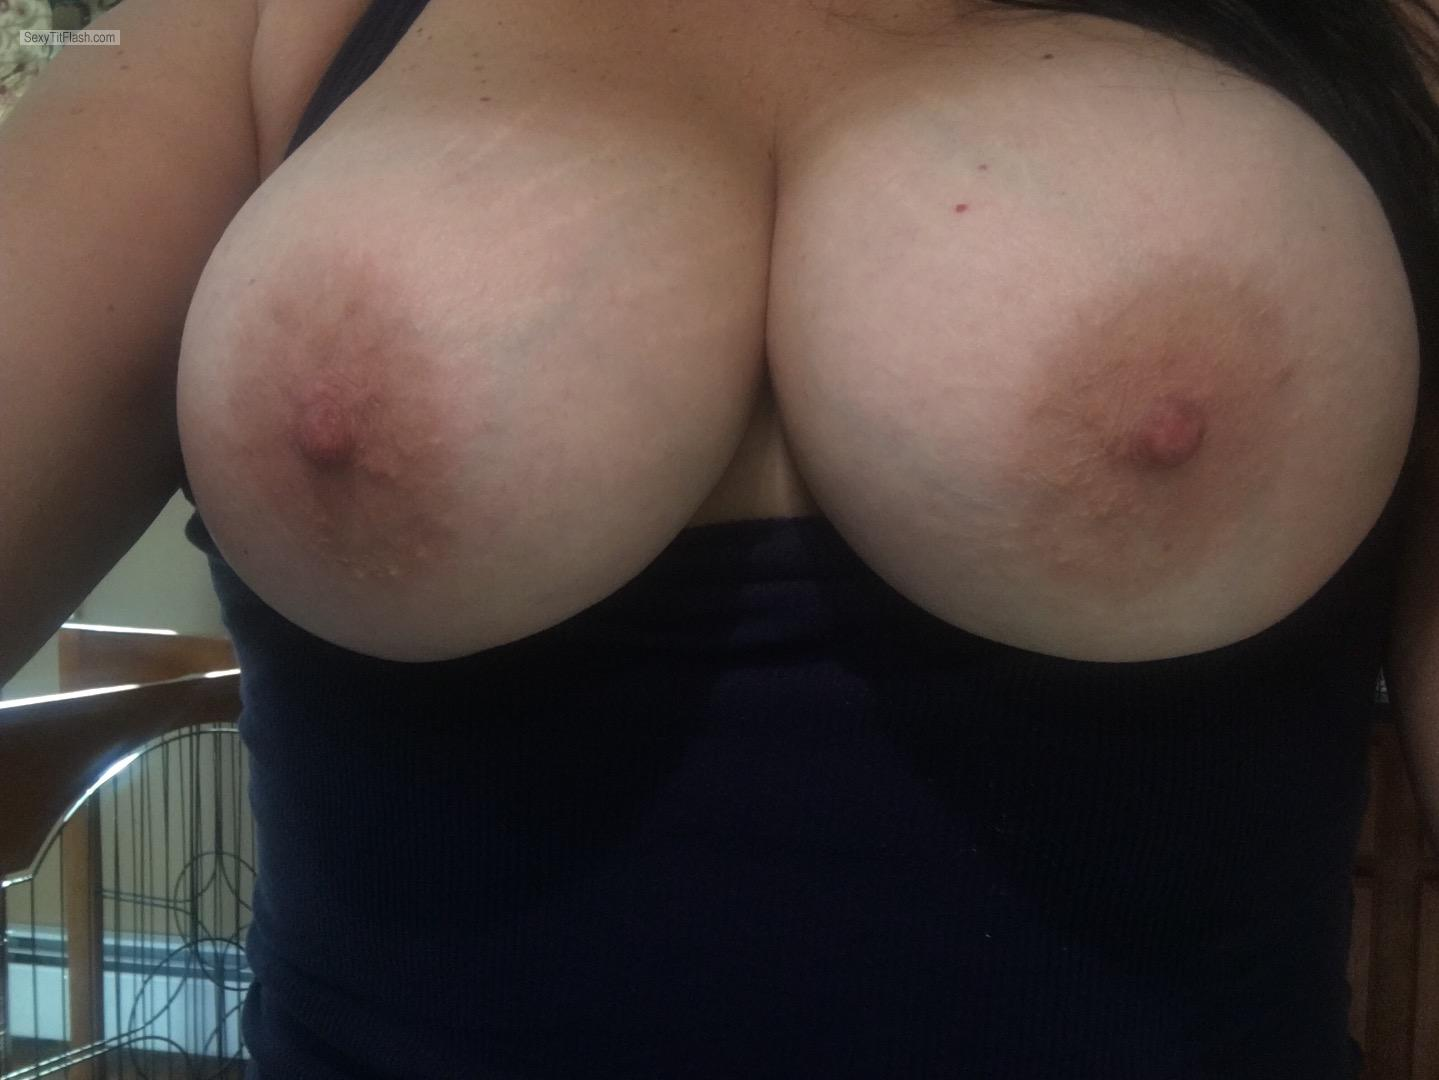 Tit Flash: My Tanlined Big Tits - Topless Shannon from United States